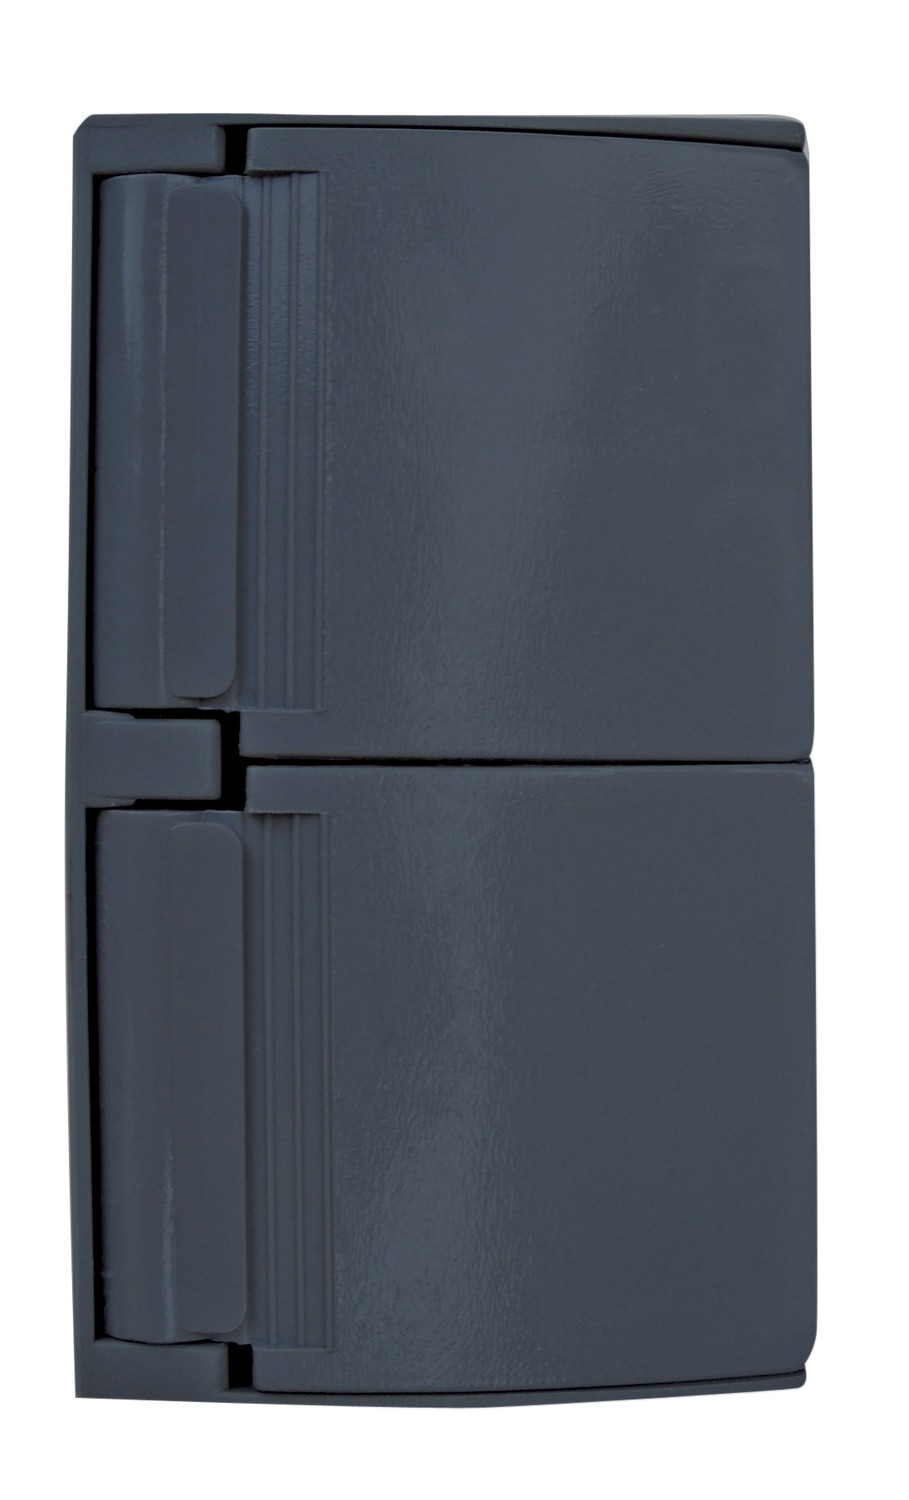 Weatherproof Standard Cover - Black